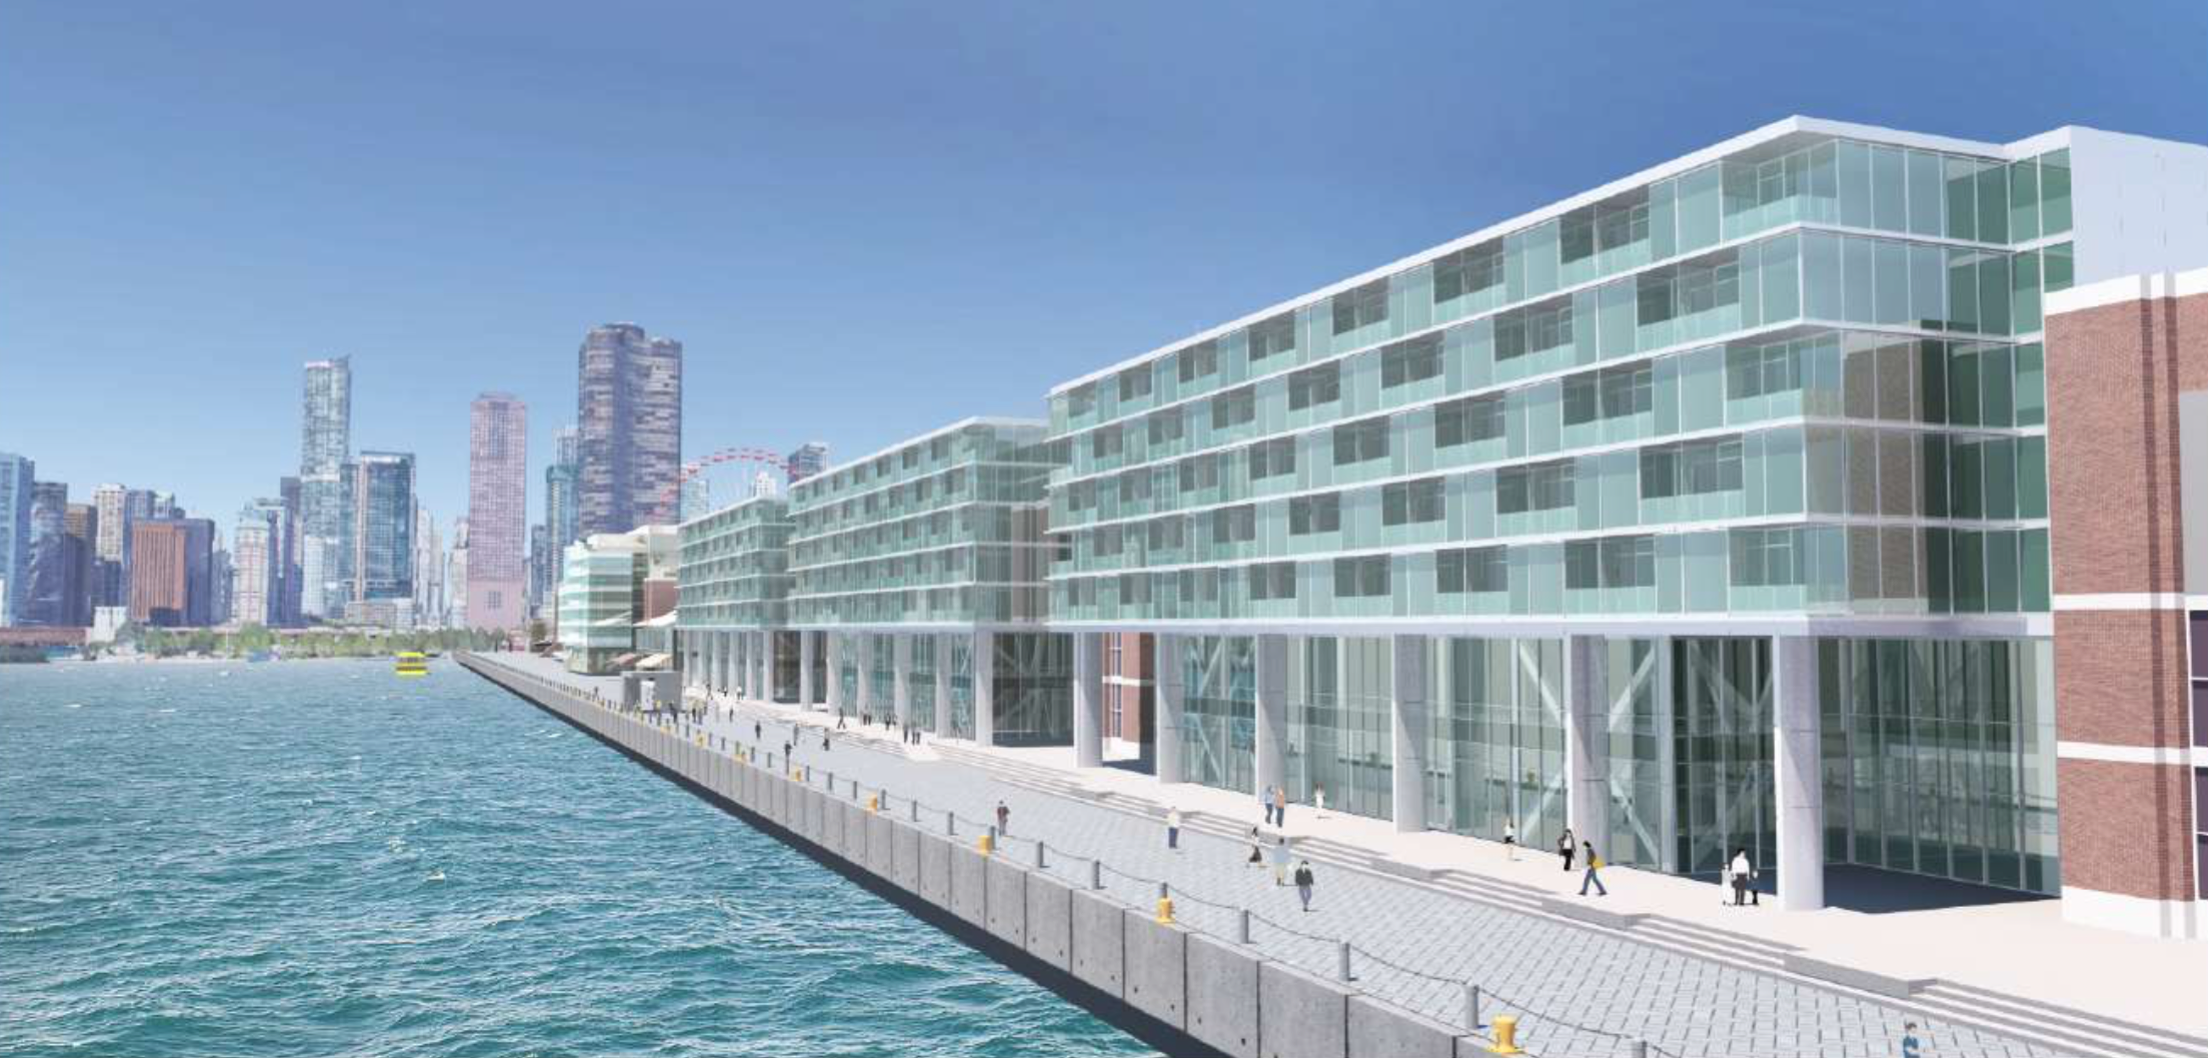 Streeterville Chicago Curbed Inside Flats Jessie Navy A Look At The Next Phase Of Pier Improvments